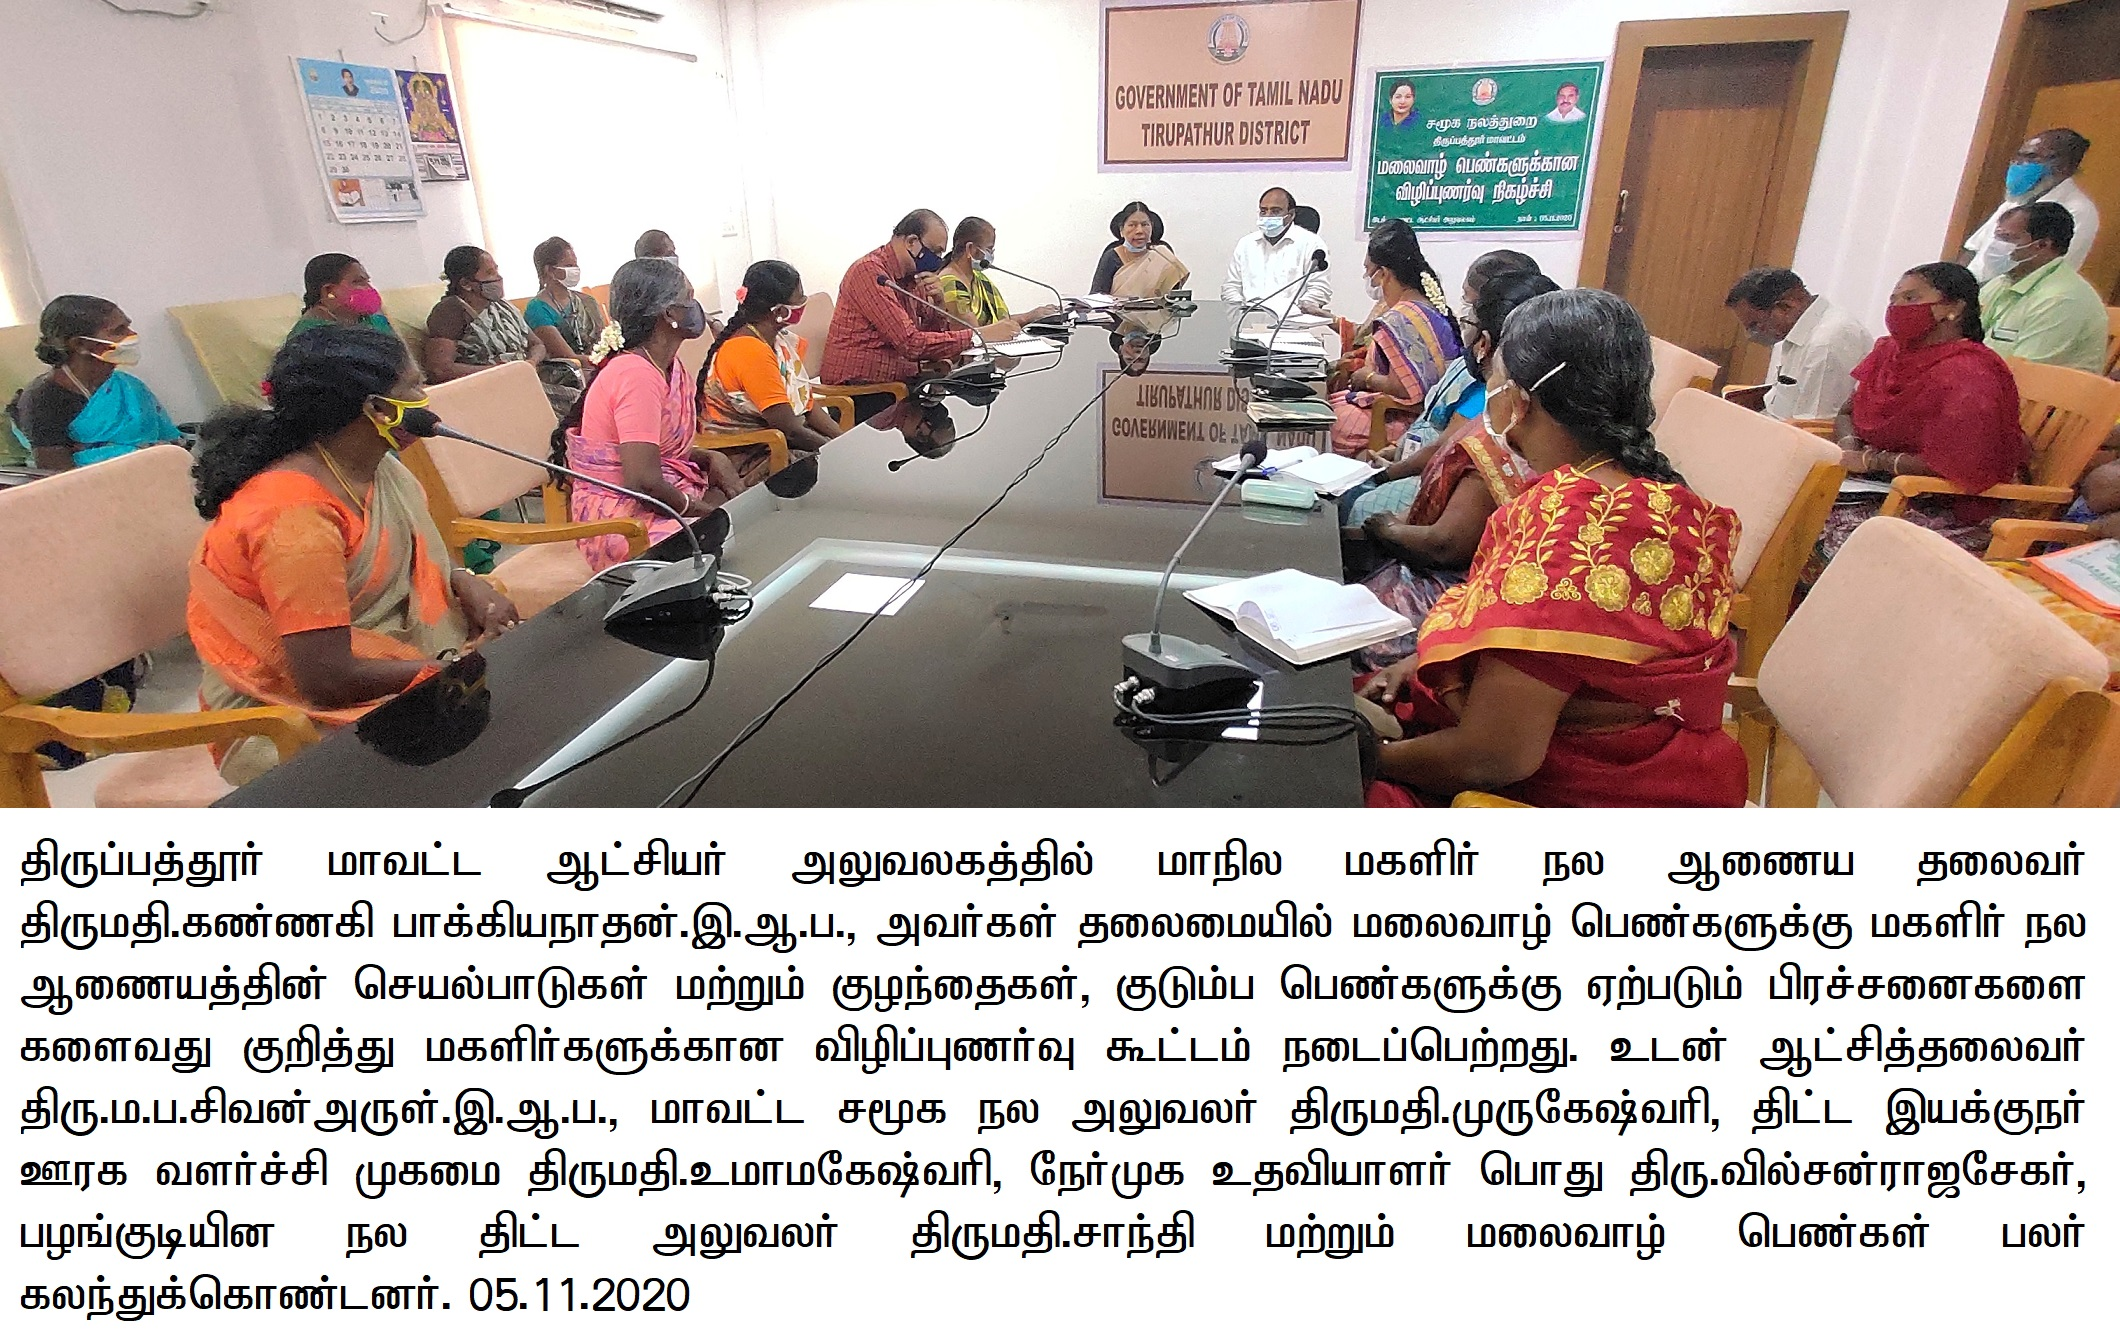 Awareness progra for women from Hill Area about Managing Domestic Problems 05-11-2020